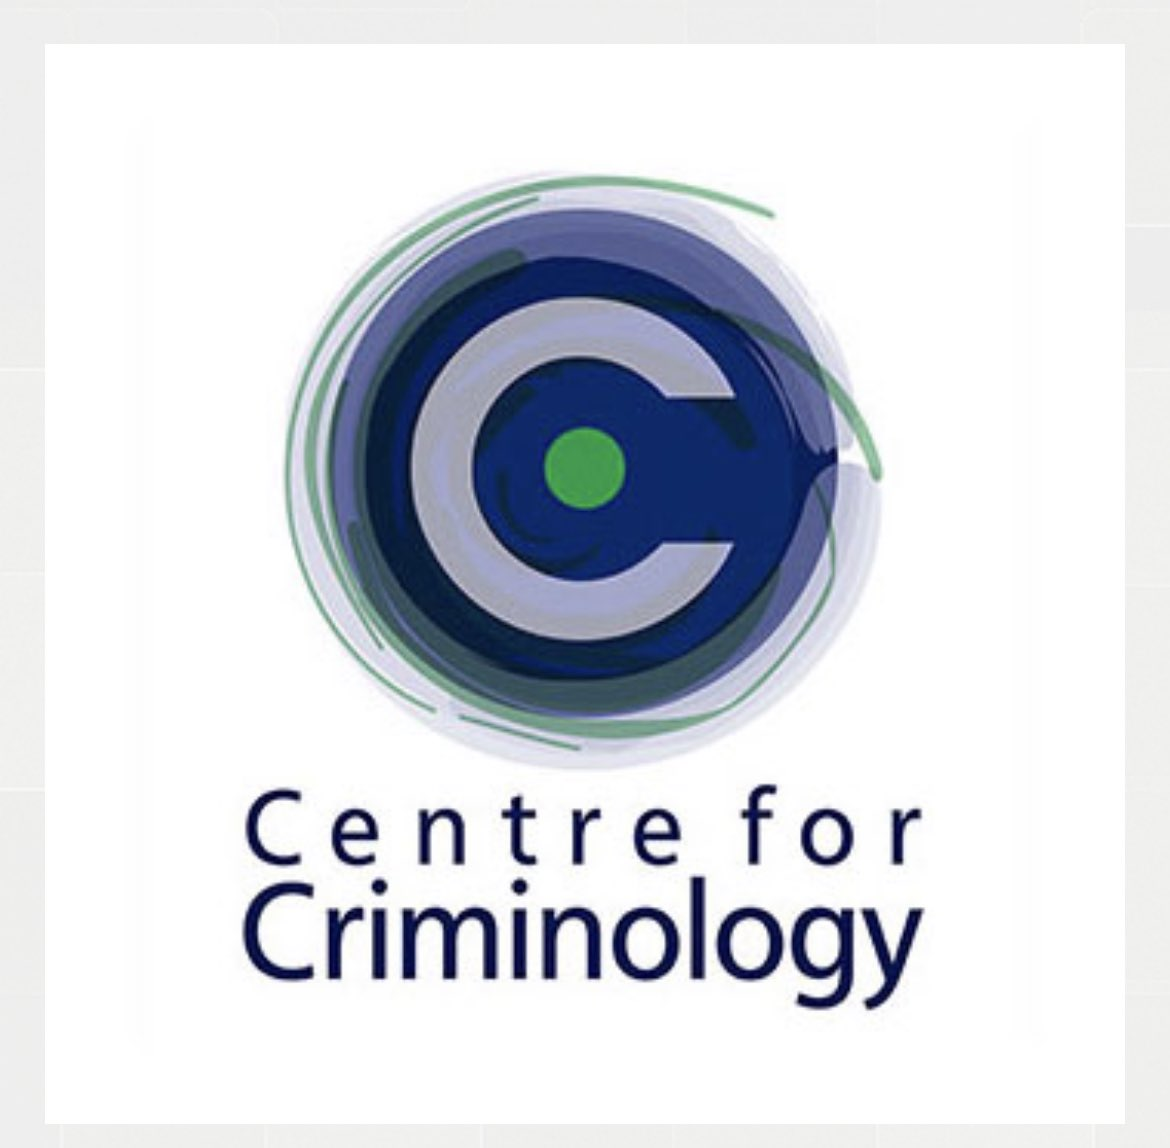 Delighted to announce that I'll be joining @OxfordCrim for a year as a Lecturer in Criminology.  Excited to be able to contribute to the increased examination of race, gender & coloniality in criminology https://t.co/WKV91vHVkZ